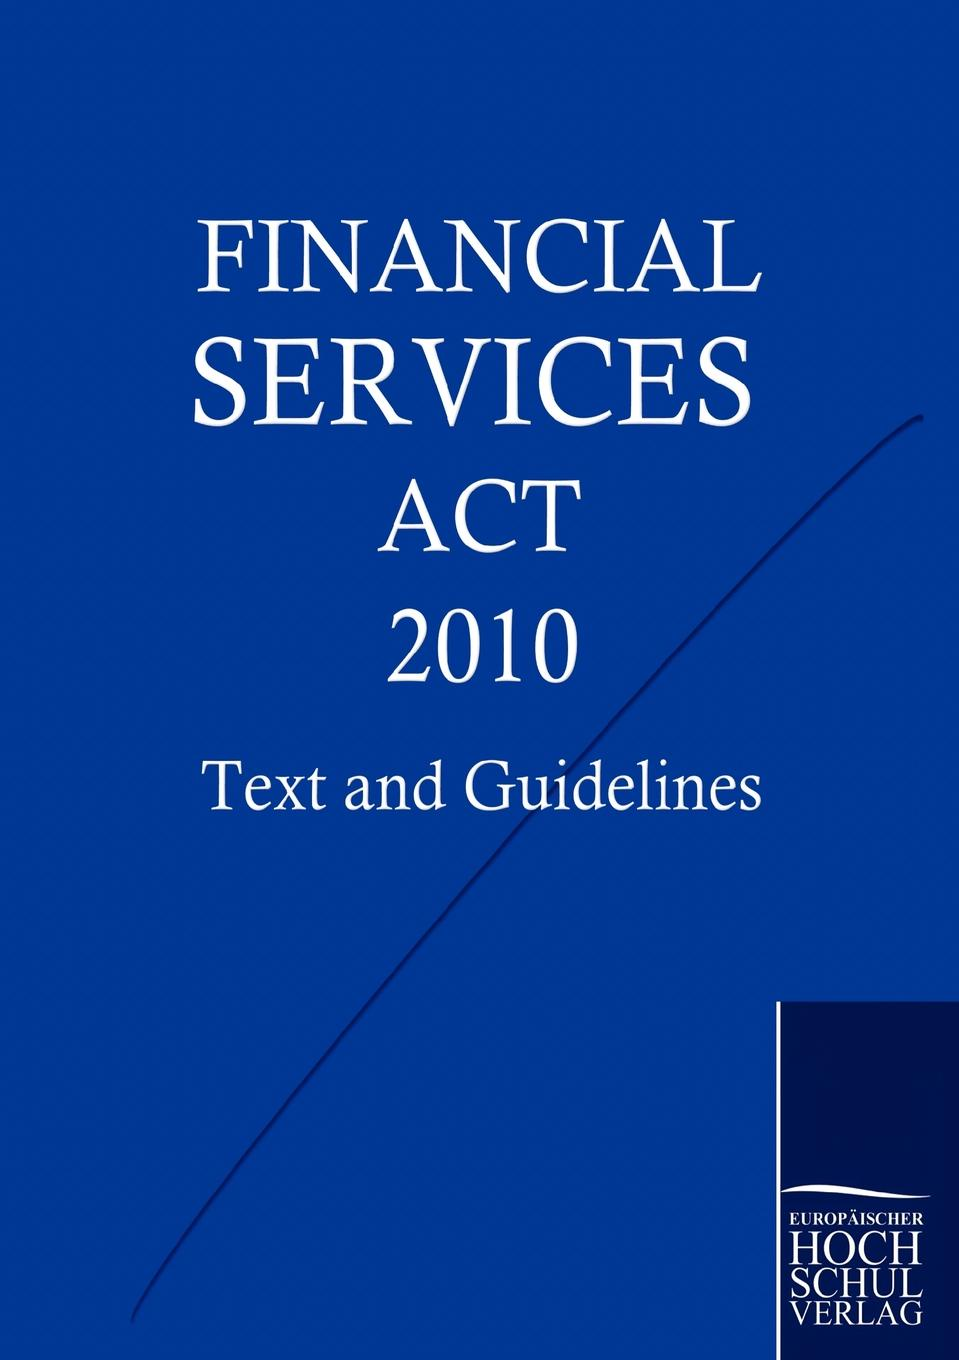 Financial Services Act 2010 sector specific regulation in the telecommunication market